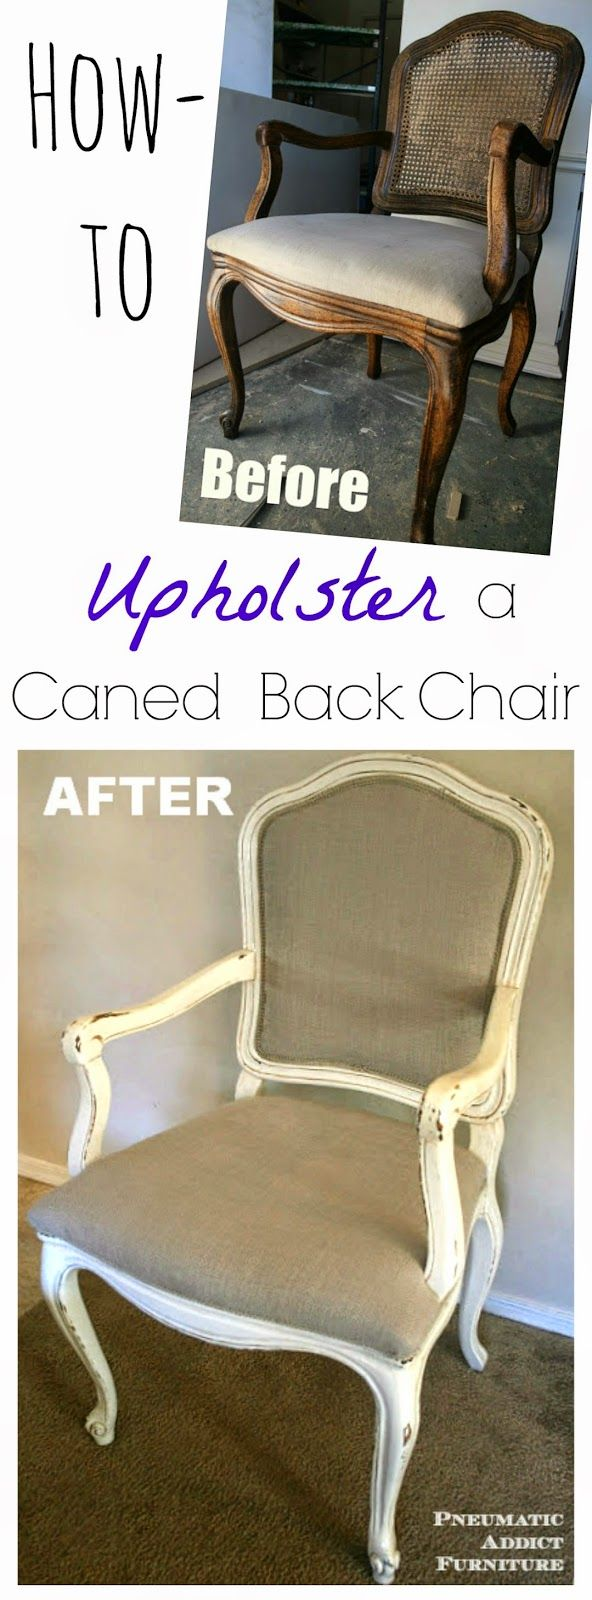 How to Upholster a Caned Back Chair- www.pneumaticaddict.com